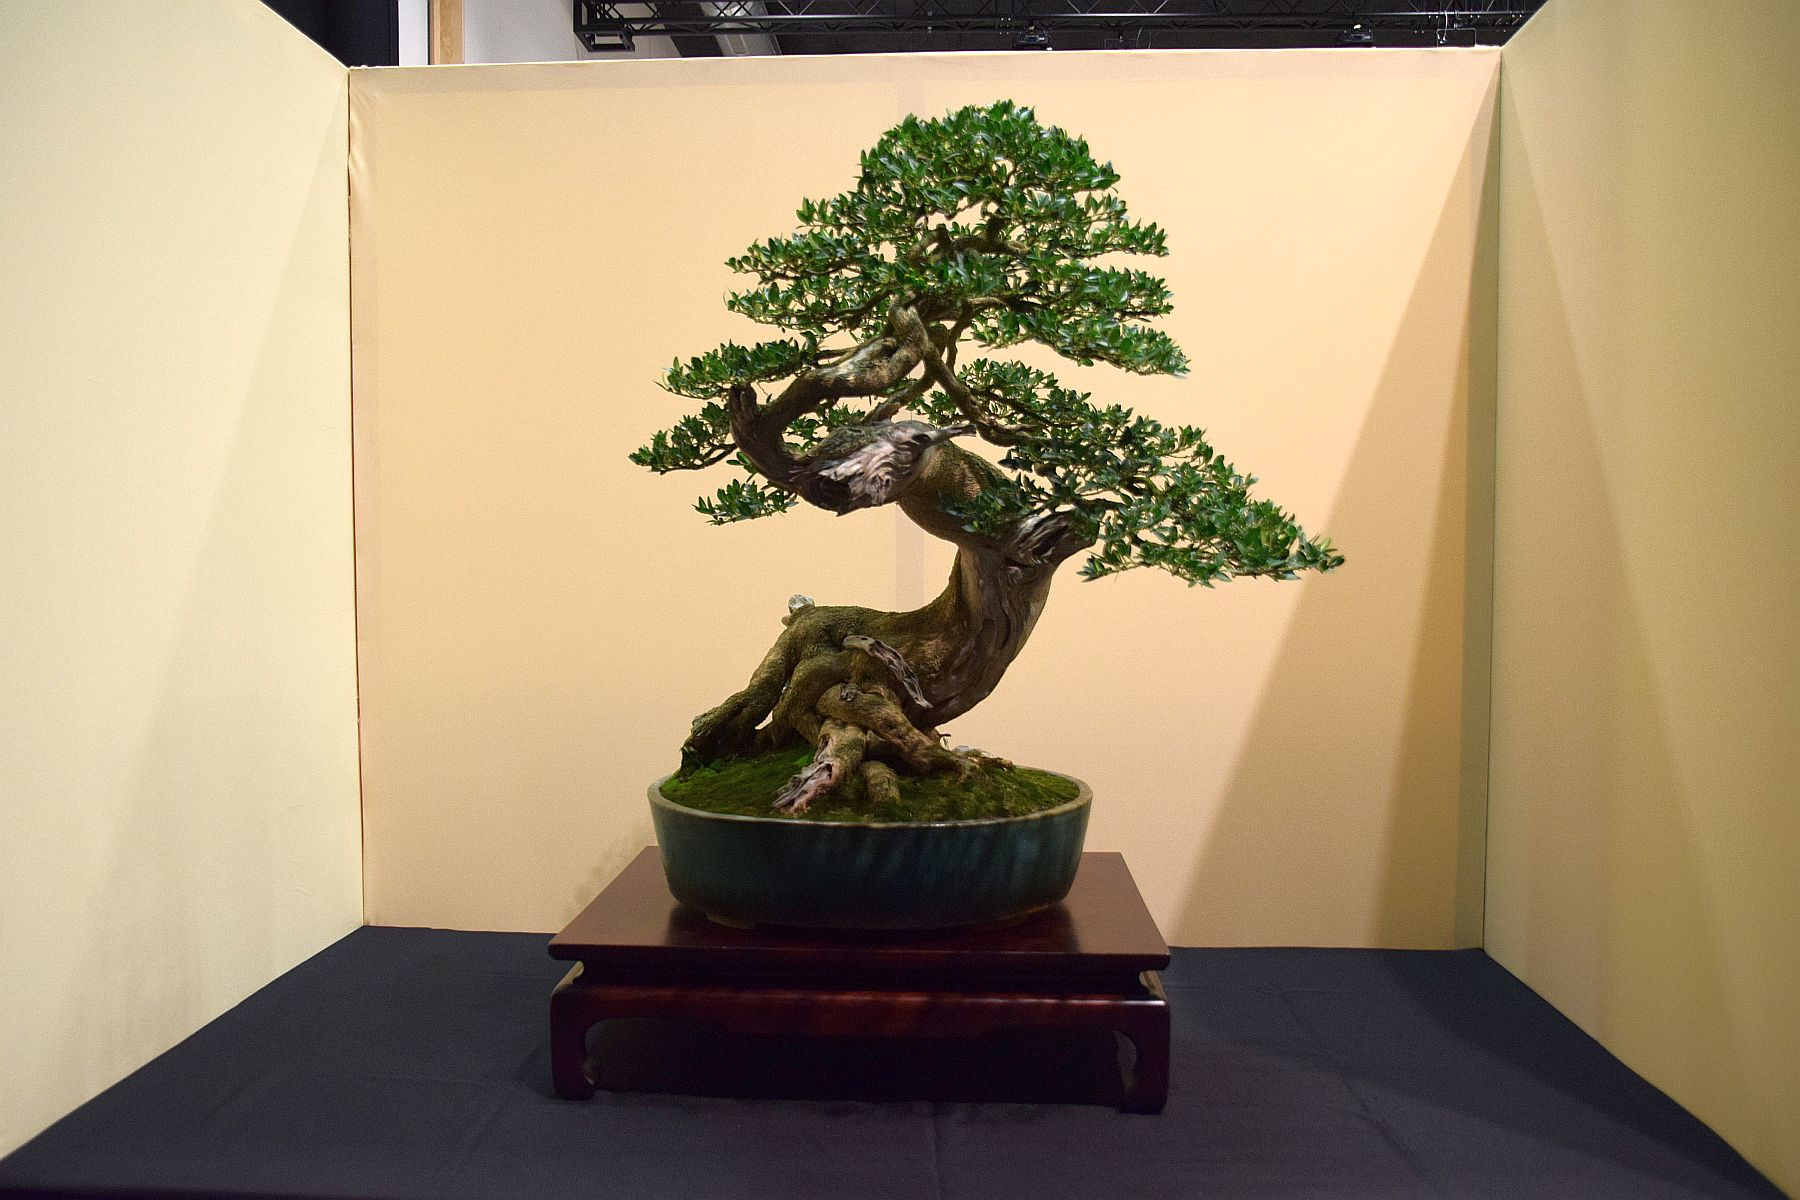 euk-bonsai-ten-2016-jp-polmans-collectie-018